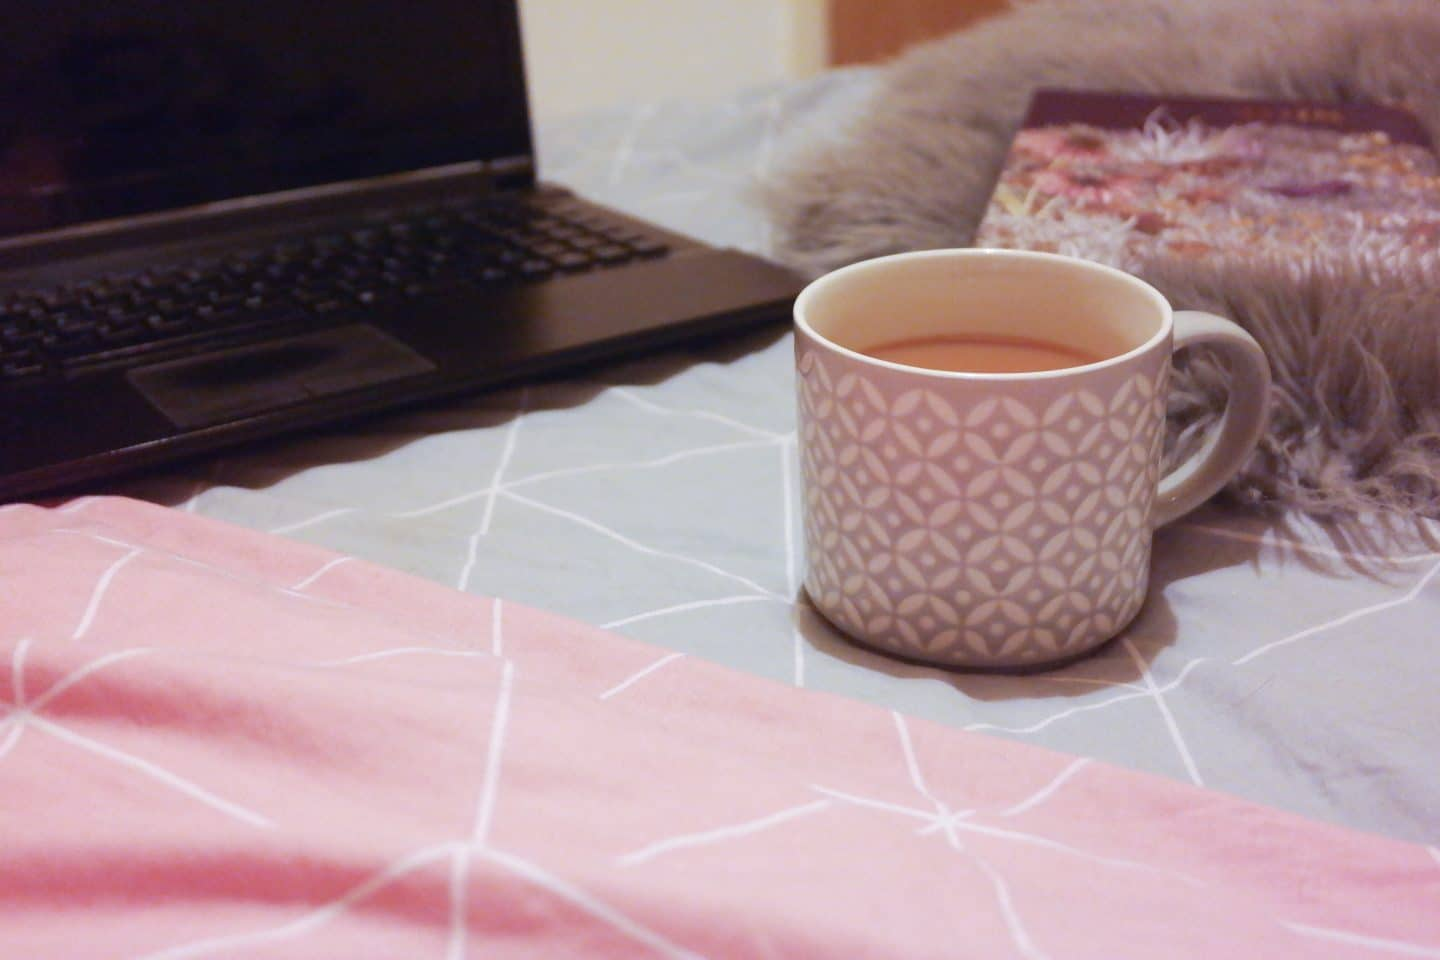 grandiose days blog perfect working environment flatlay laptop tea diary